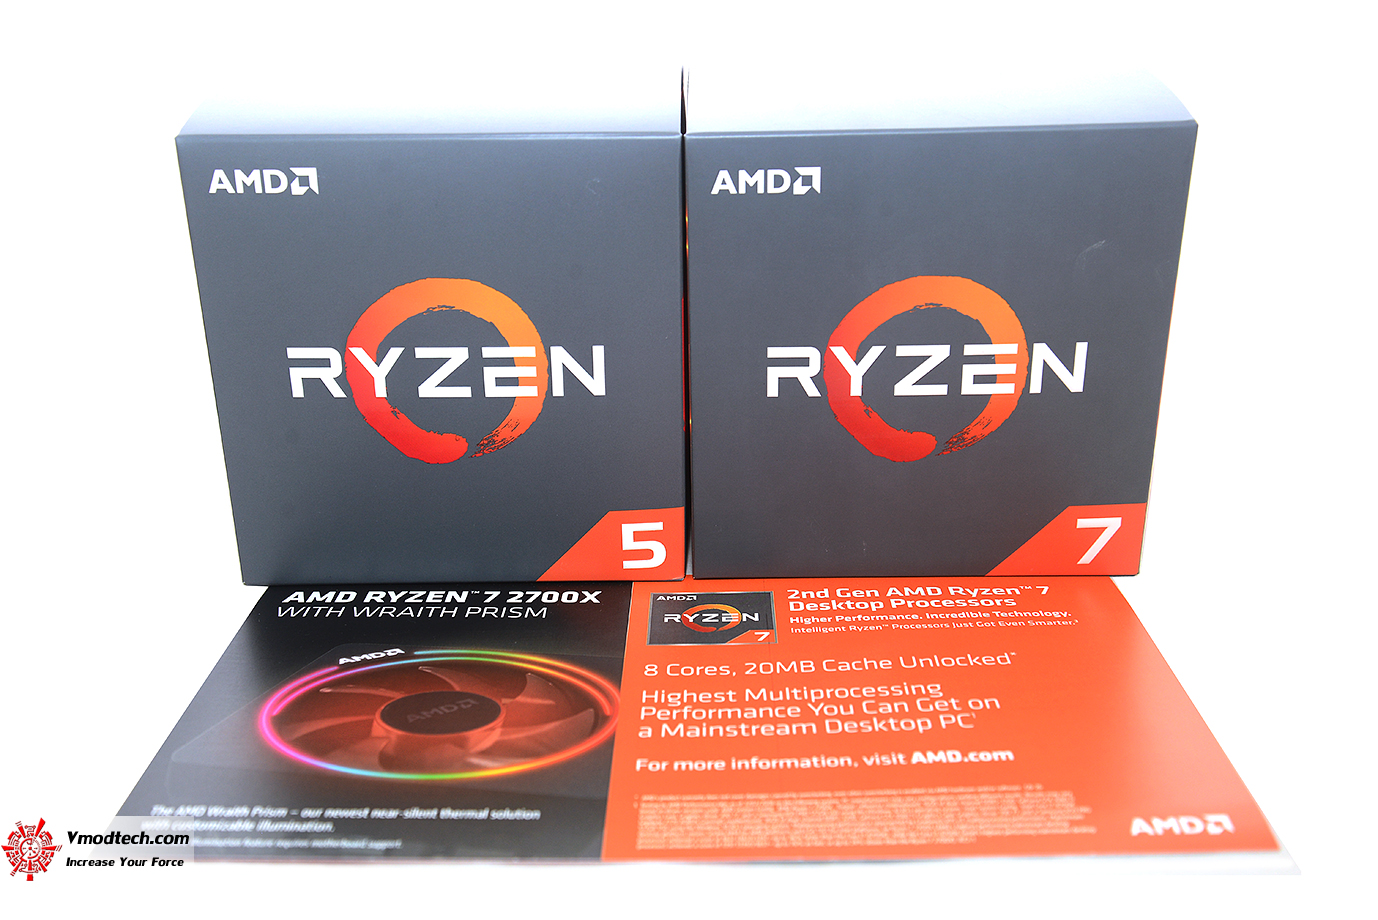 dsc 0944 AMD RYZEN 5 2600X PROCESSOR REVIEW